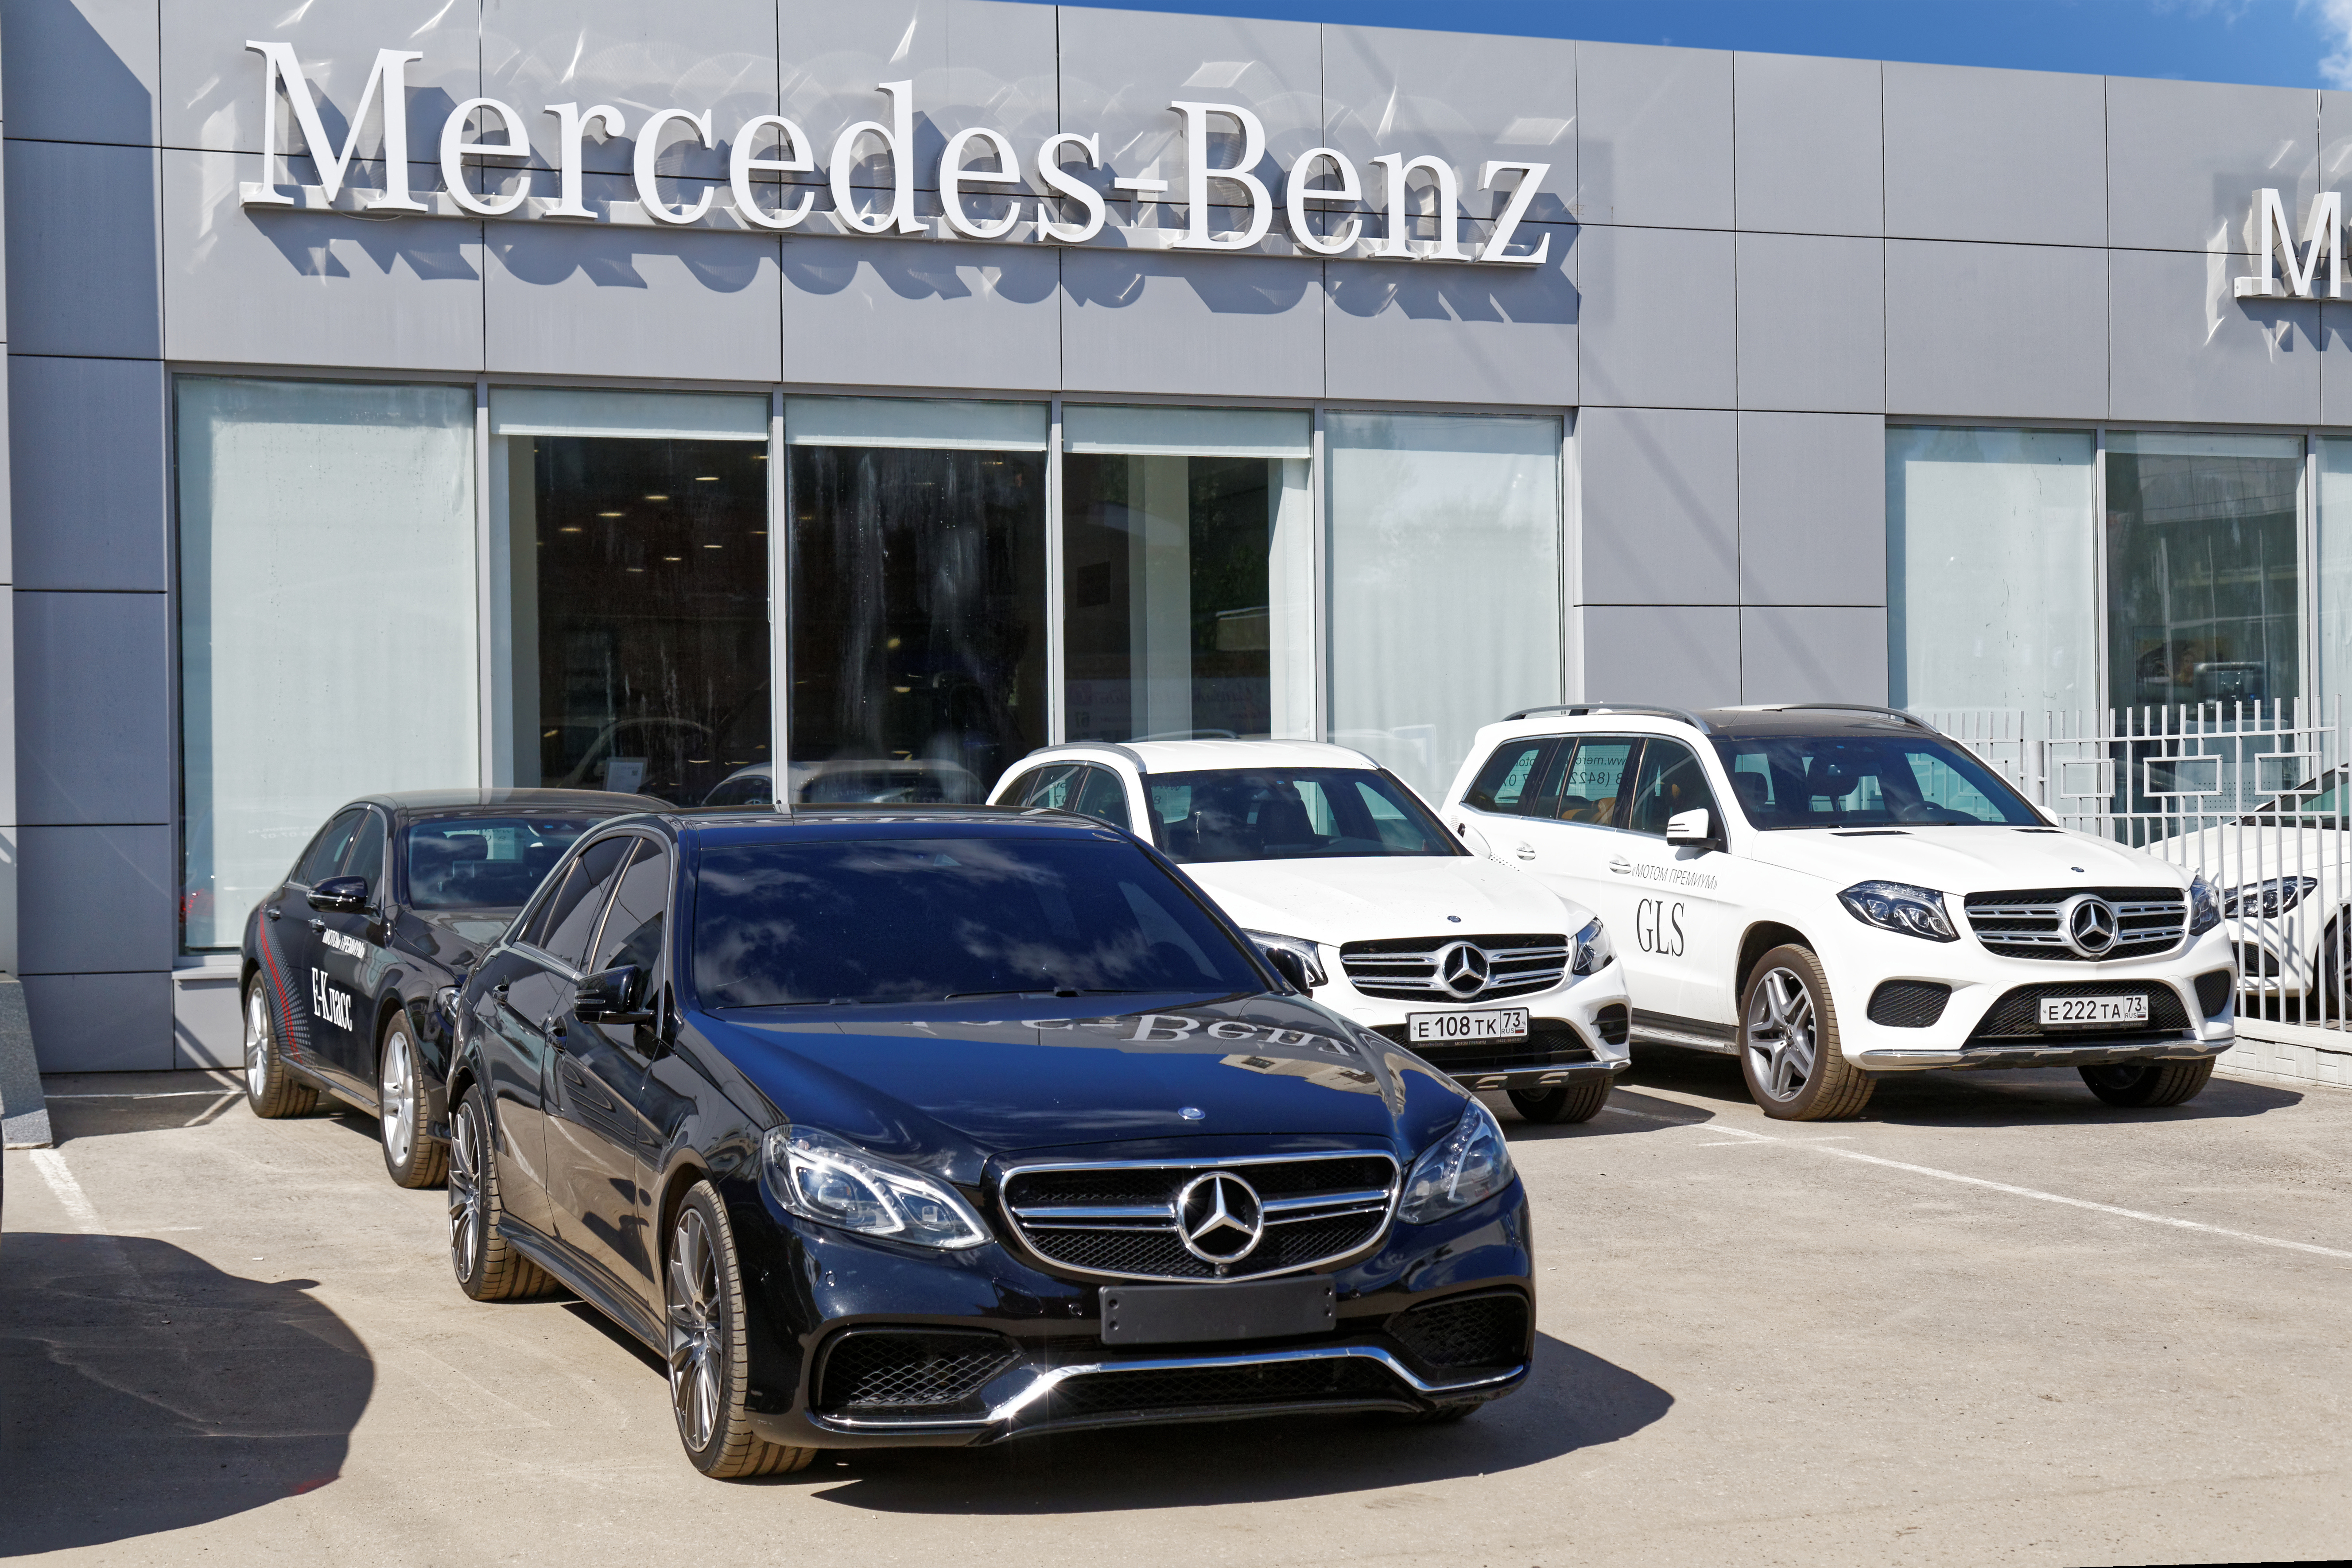 Mercedes transmission service in Sacramento